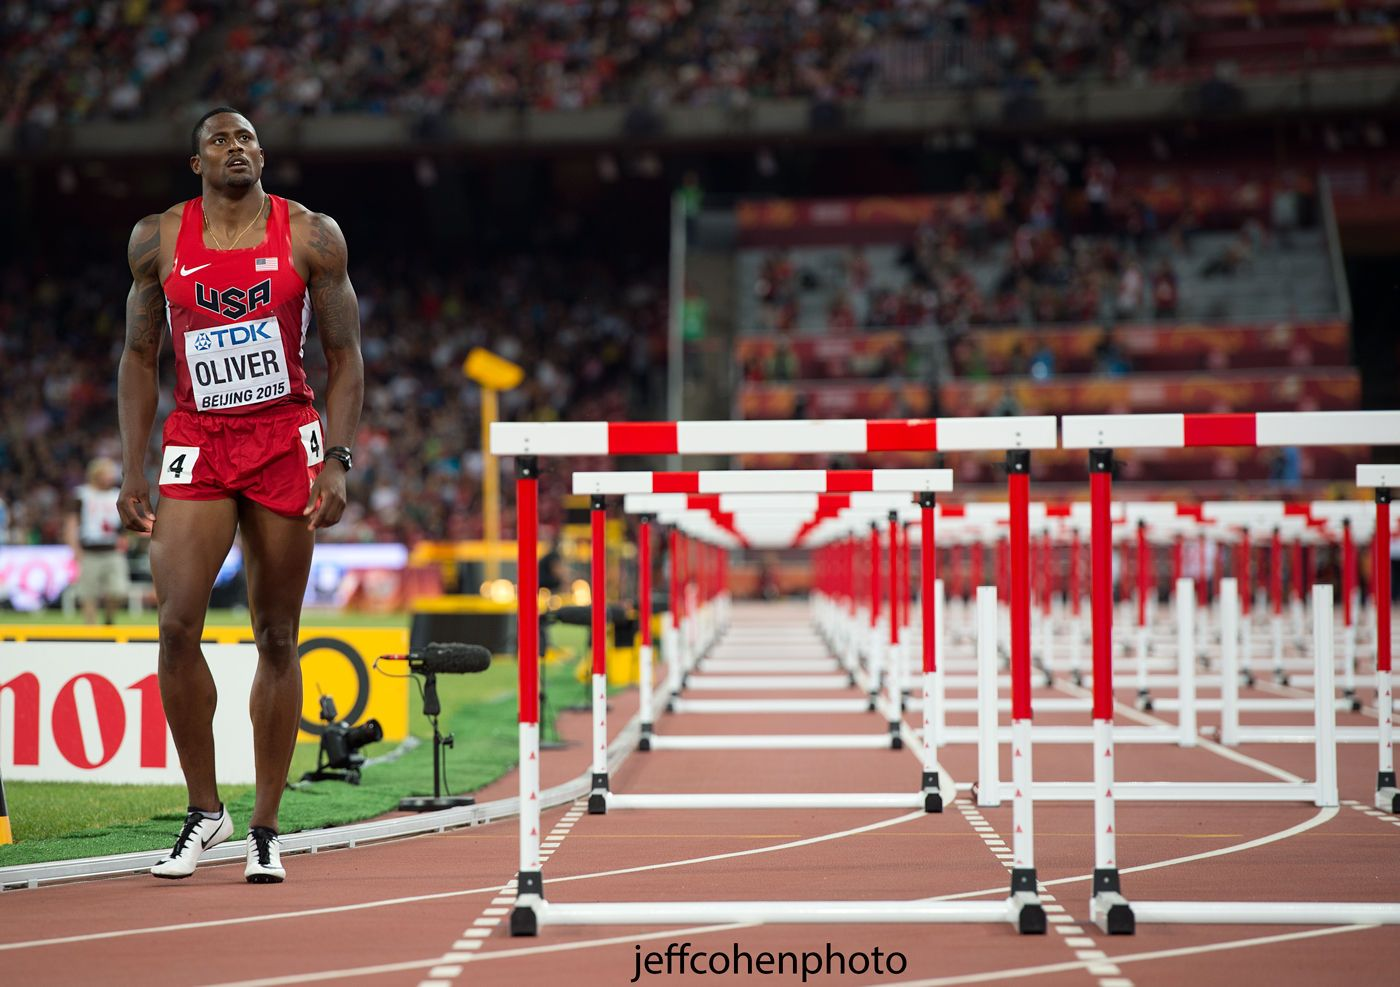 1beijing2015_night__6_david_oliver_semis_110mh__jeff_cohen_photo_24943_web.jpg